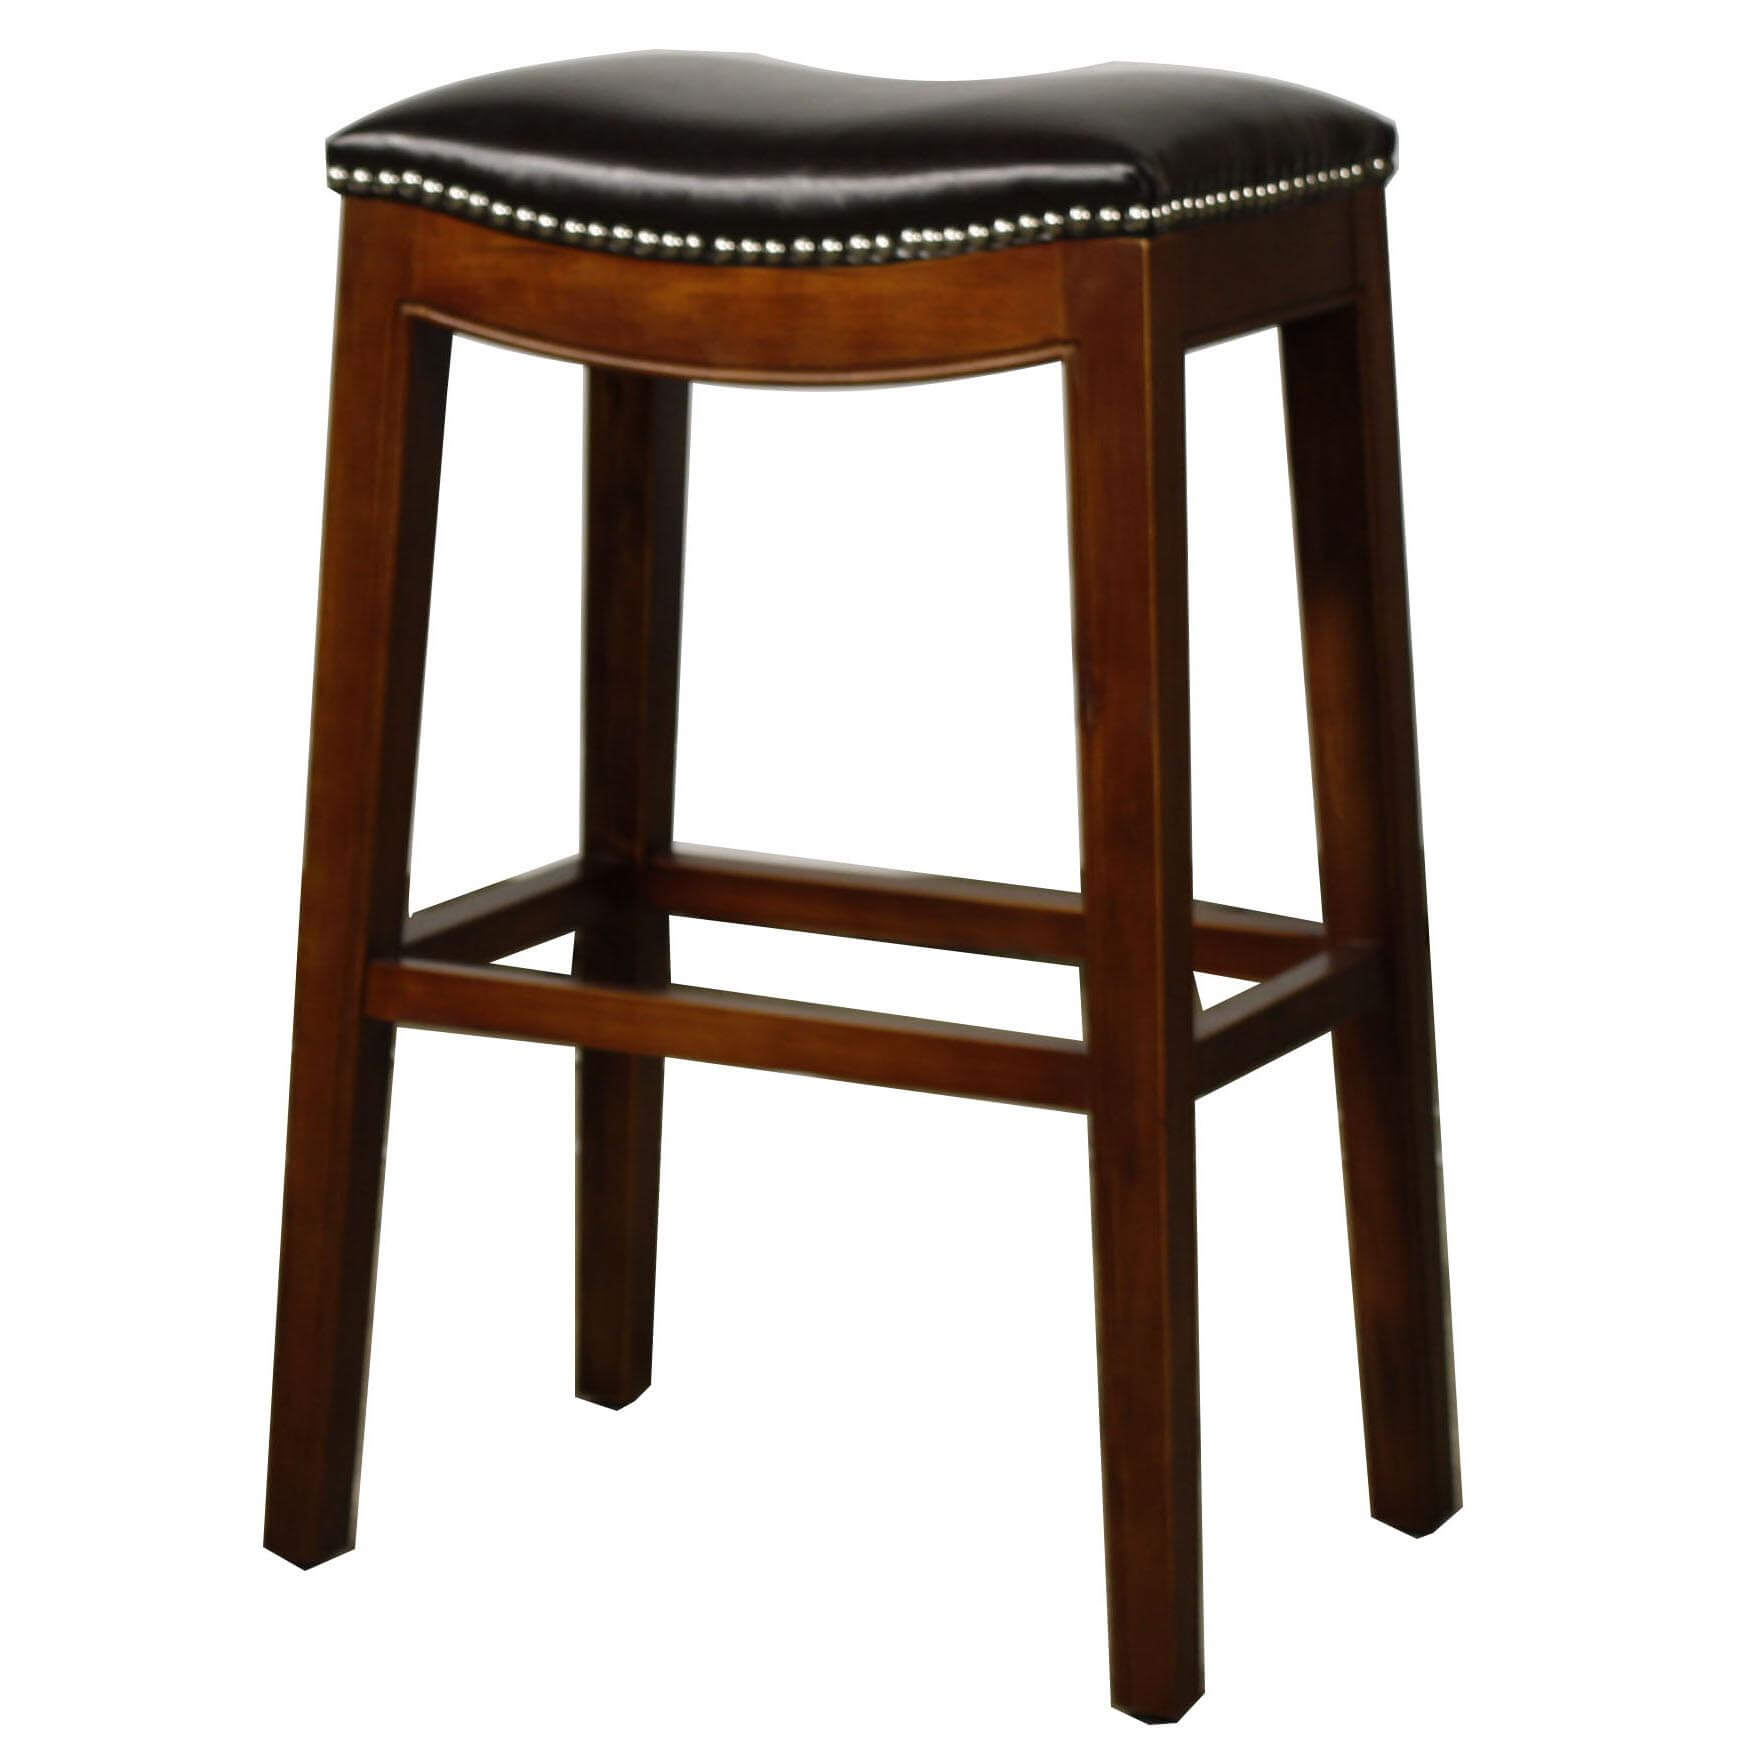 swivel stools bar stool leather red brown p hd burrell hillsdale dark furniture